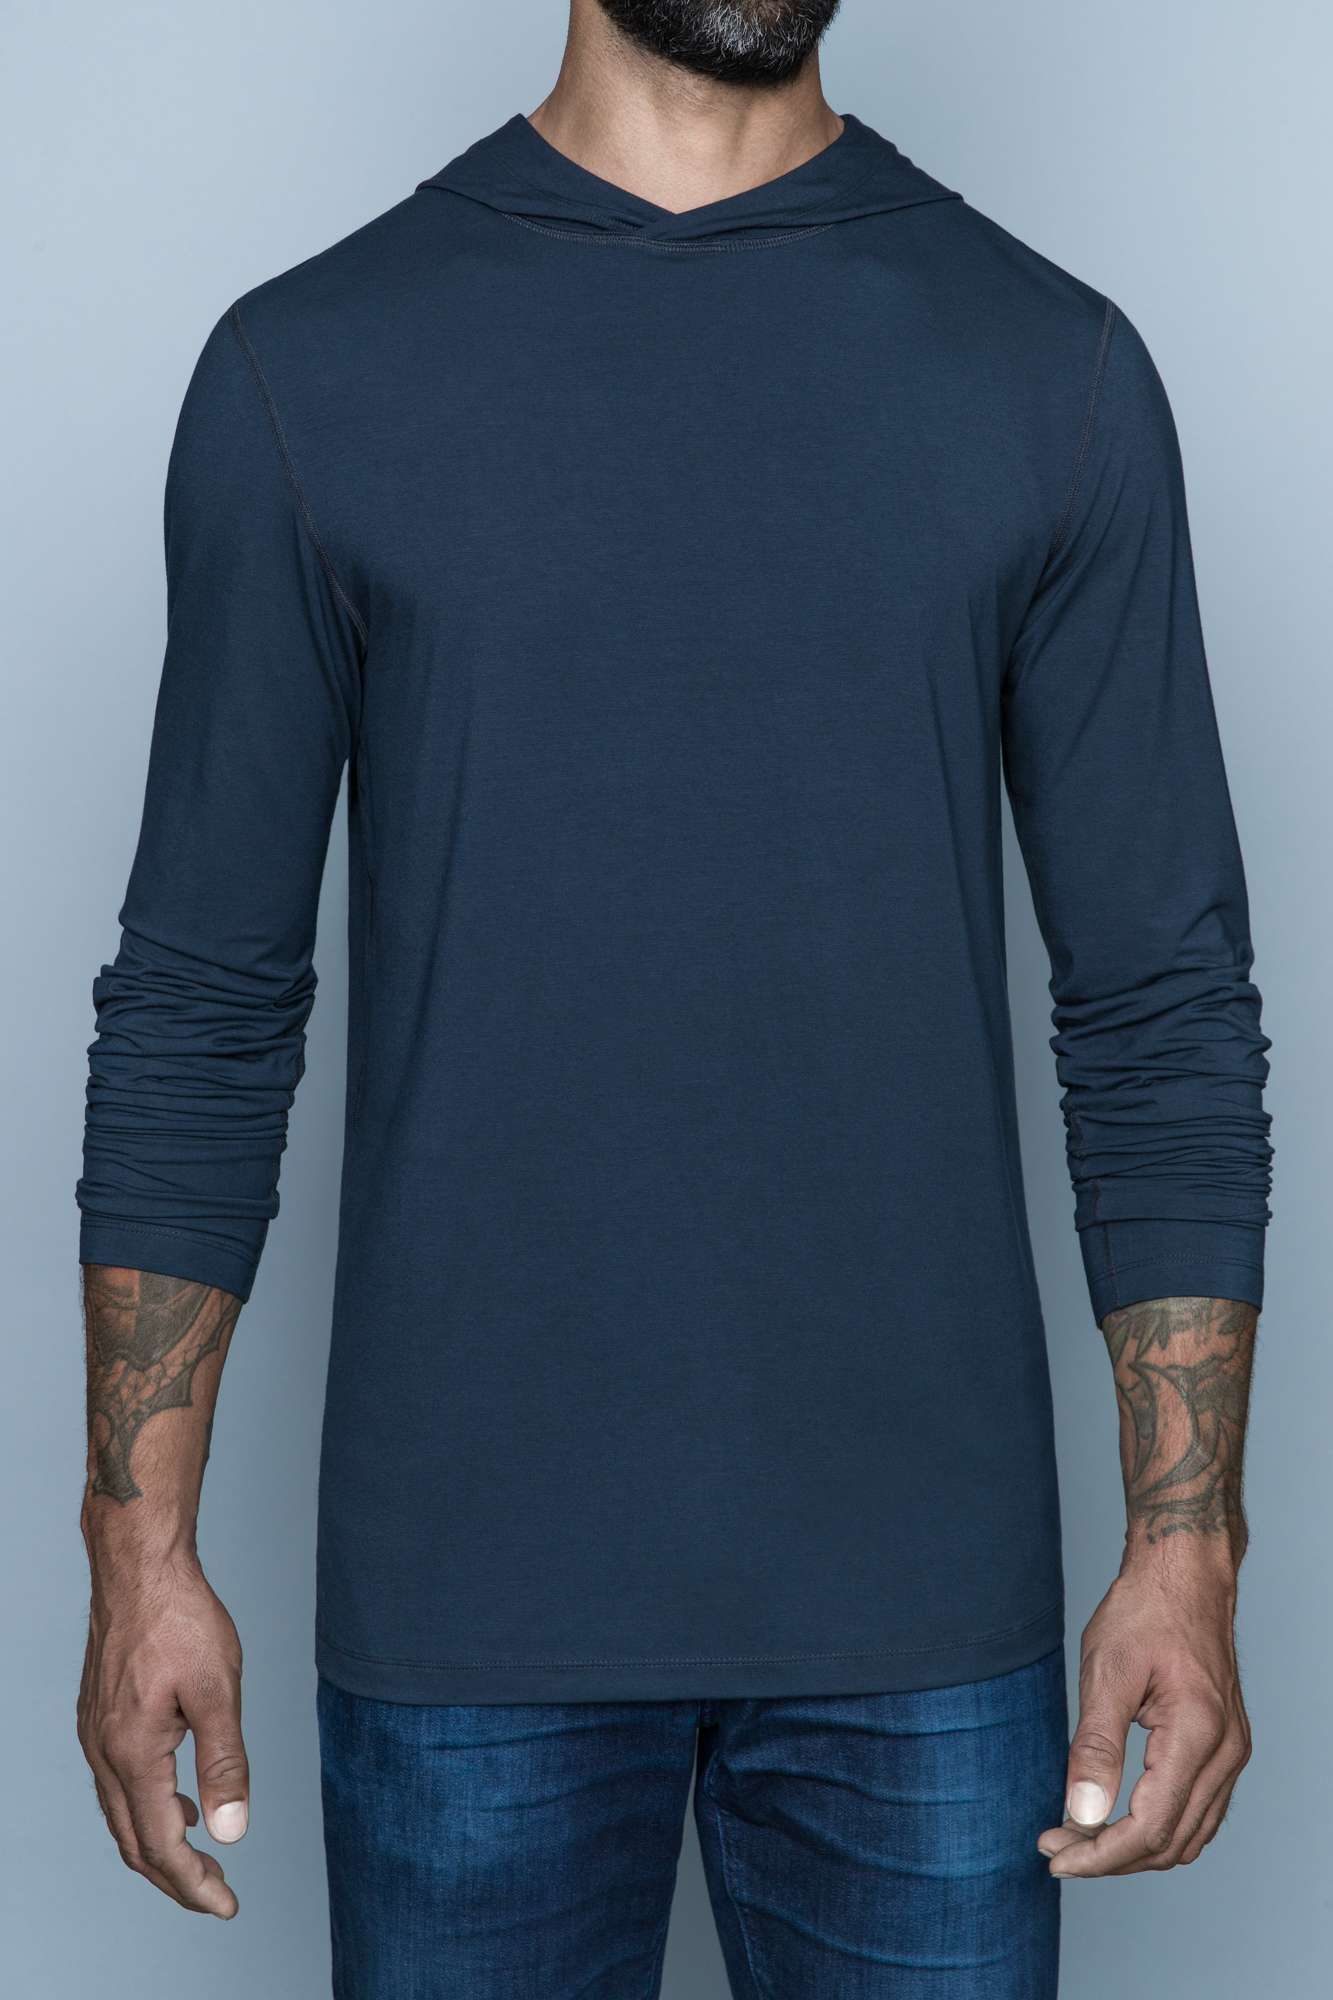 The Navas Lab Vasquez long-sleeve hooded shirt for tall guys in grey. The perfect tall slim shirt for tall and slim guys looking for style and comfort.